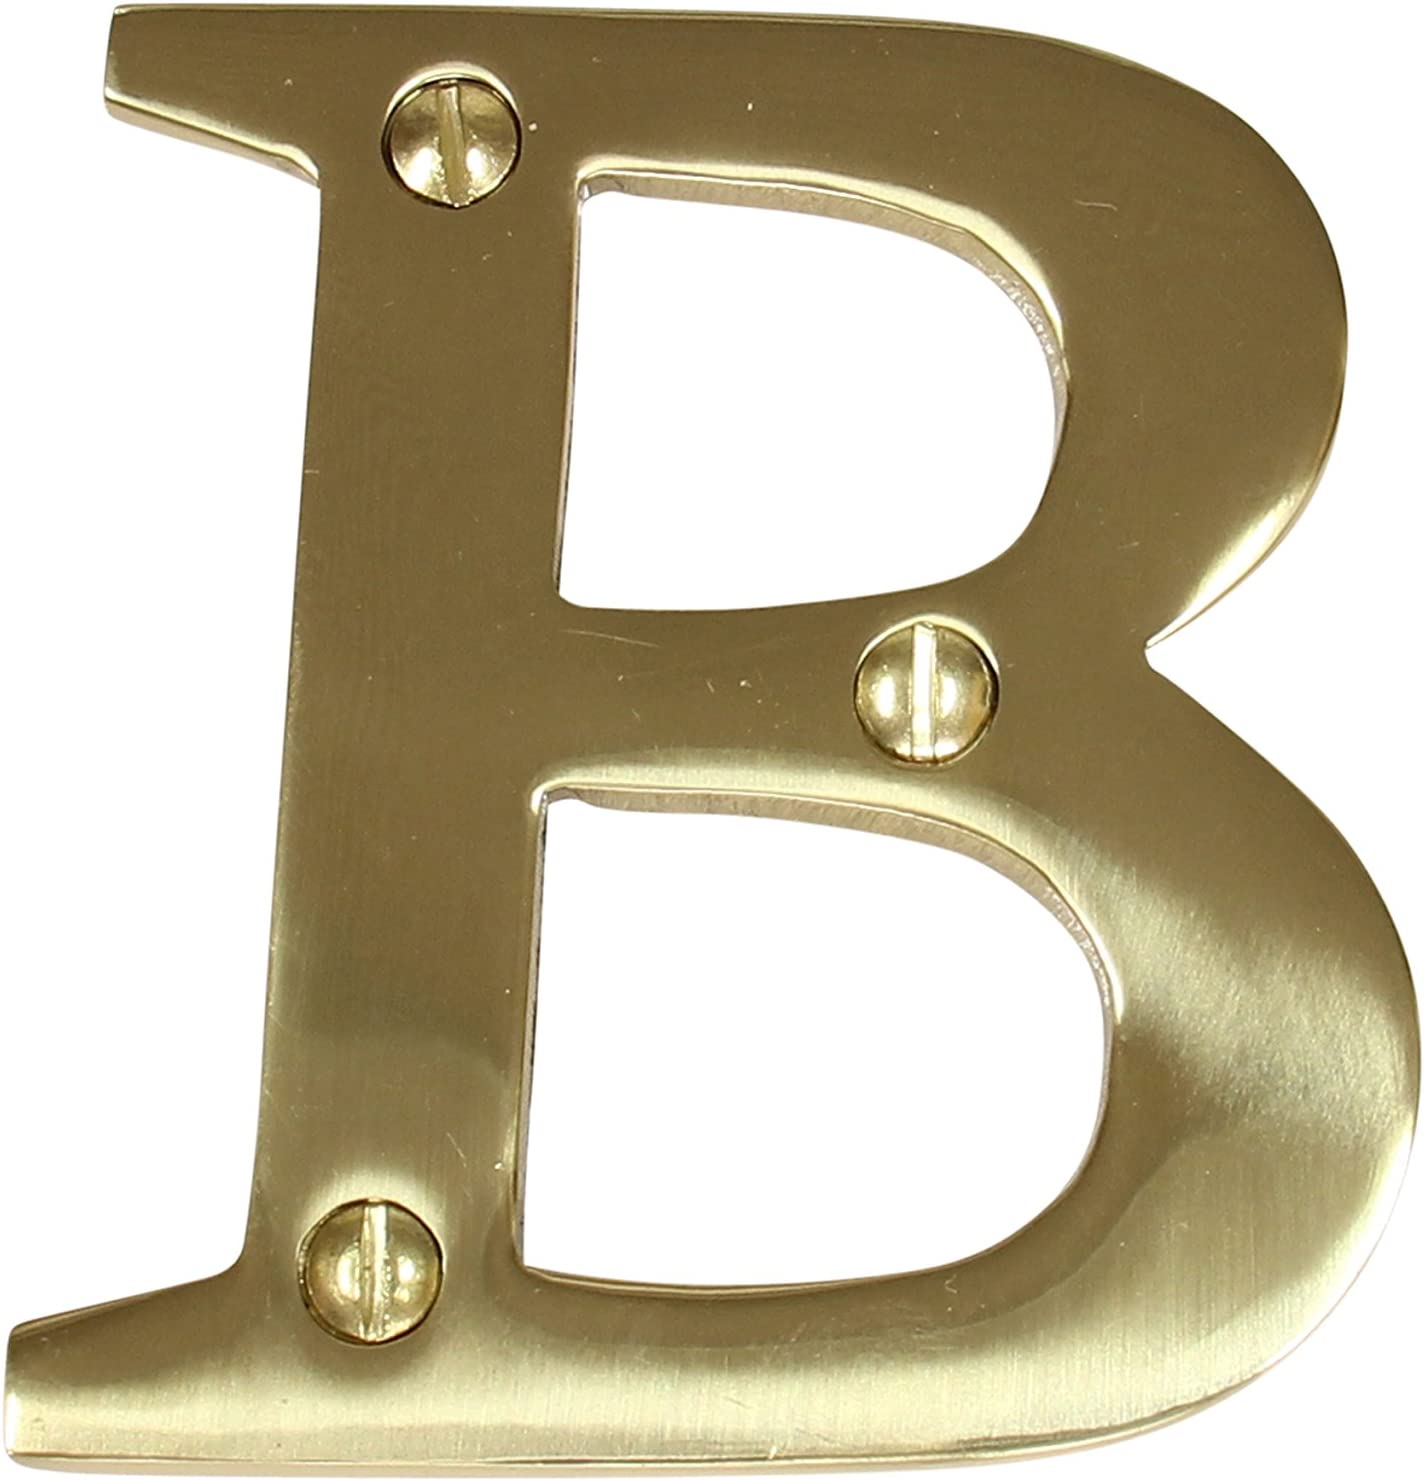 RCH Hardware LT-BR2350-75 Brass House Letter, 3 Inch, Polished Brass